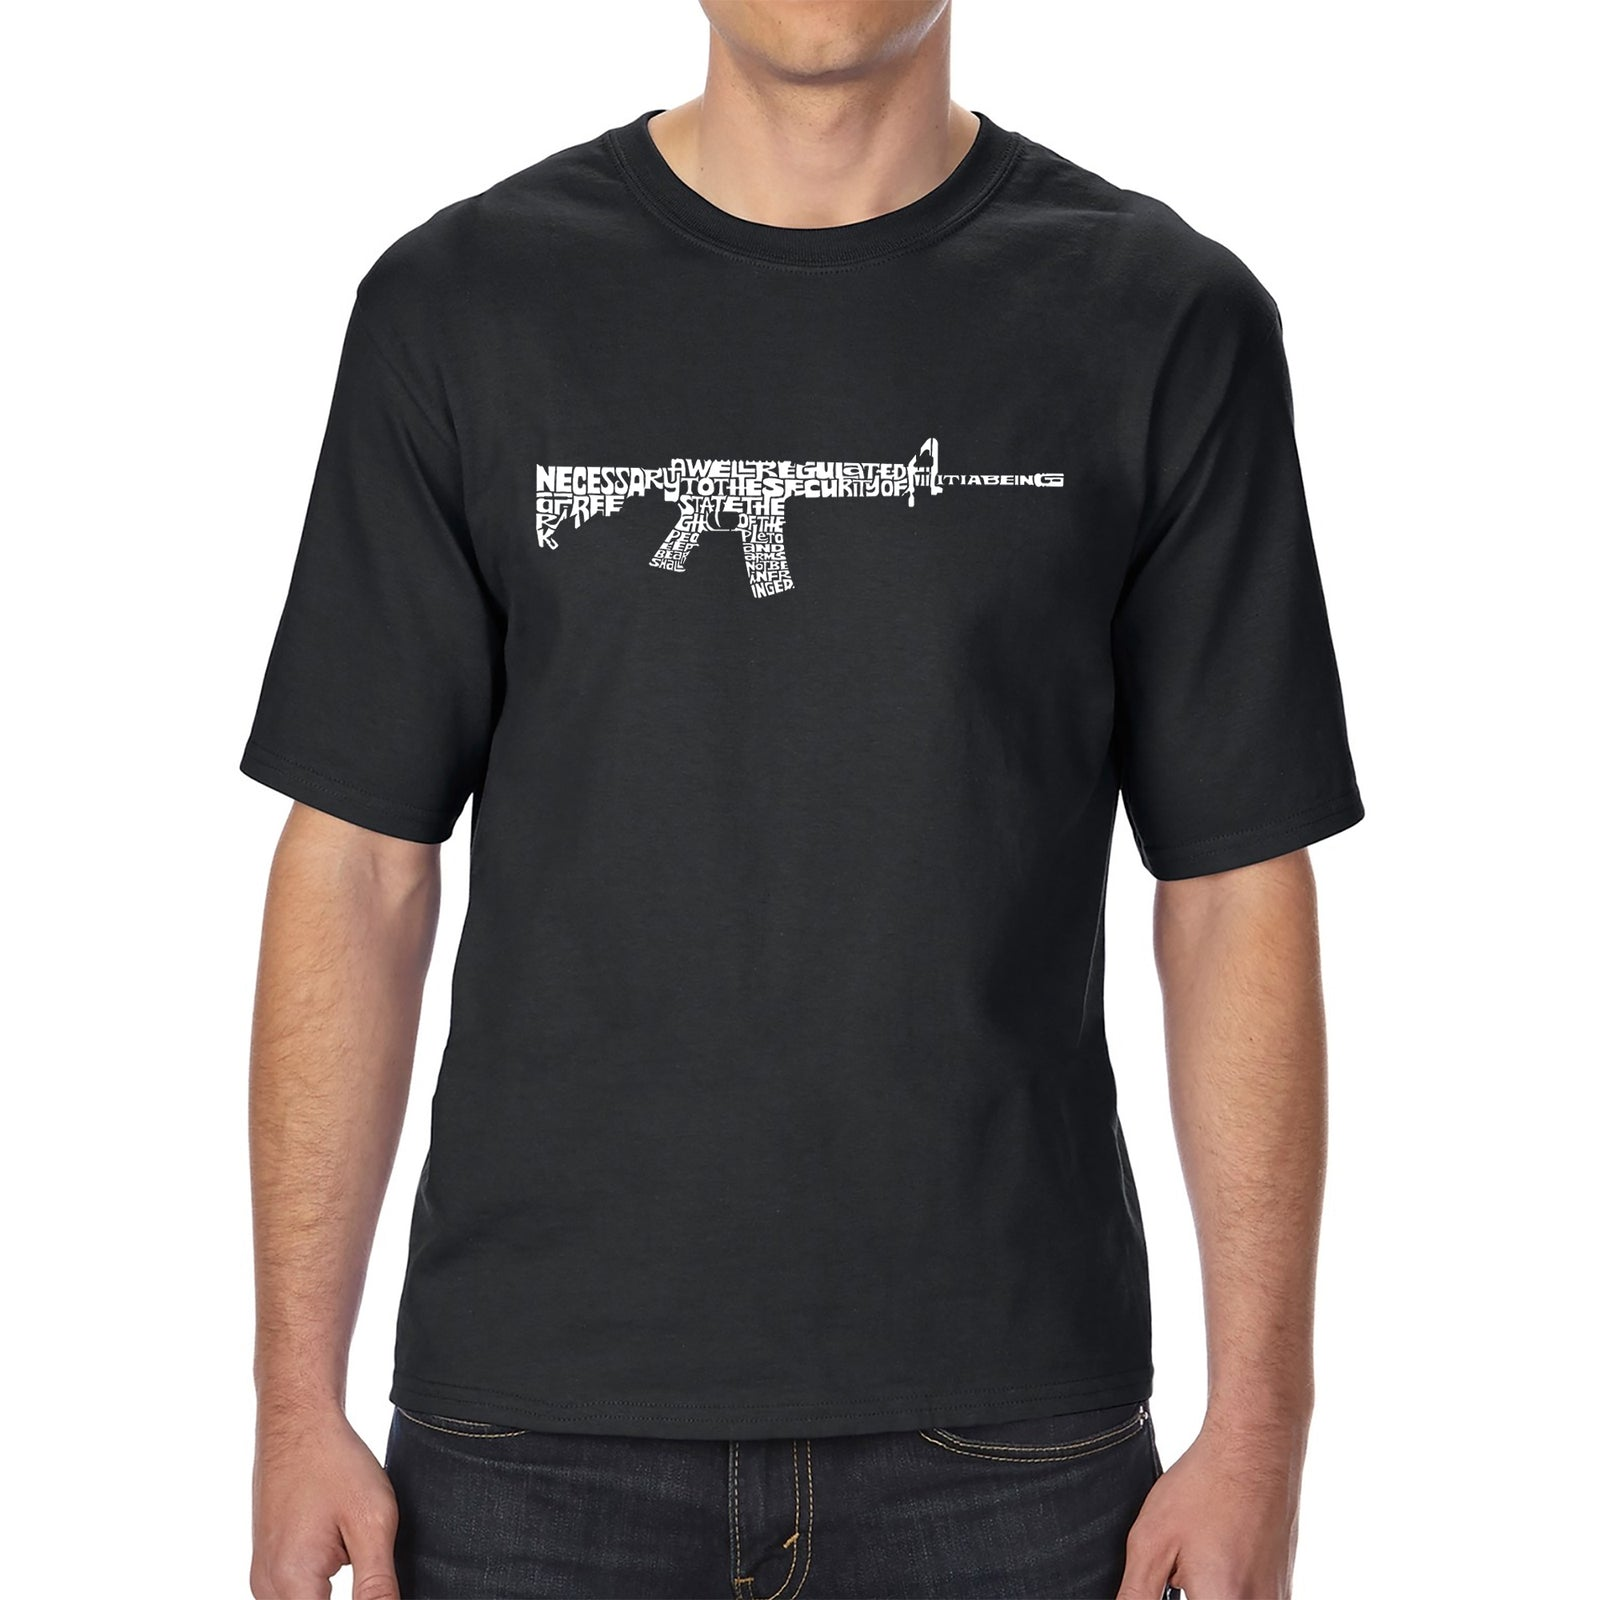 Men's Tall and Long Word Art T-shirt - AR15 2nd Amendment Word Art